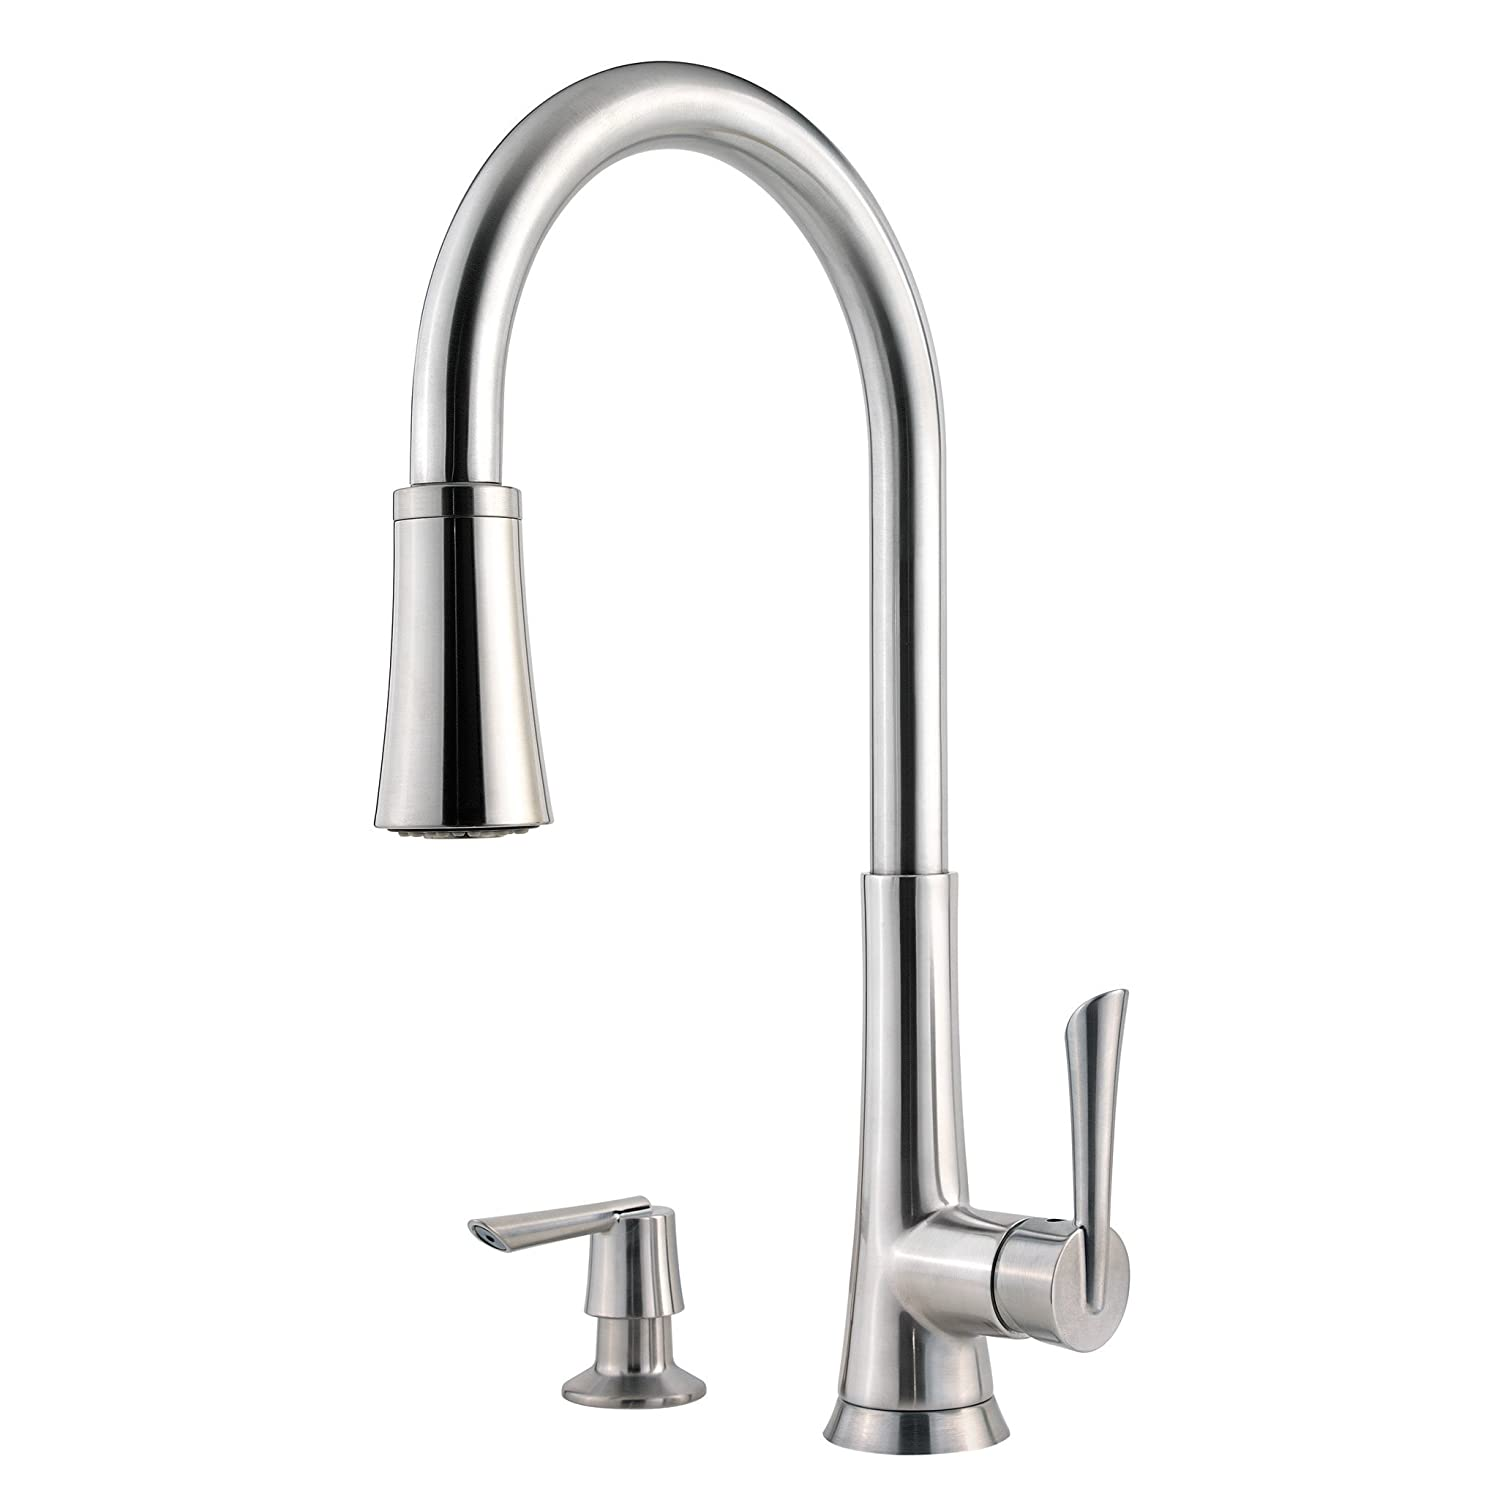 Pfister mystique 1 handle 1 2 3 or 4 hole pull down kitchen faucet w soap dispenser in stainless steel touch on kitchen sink faucets amazon com